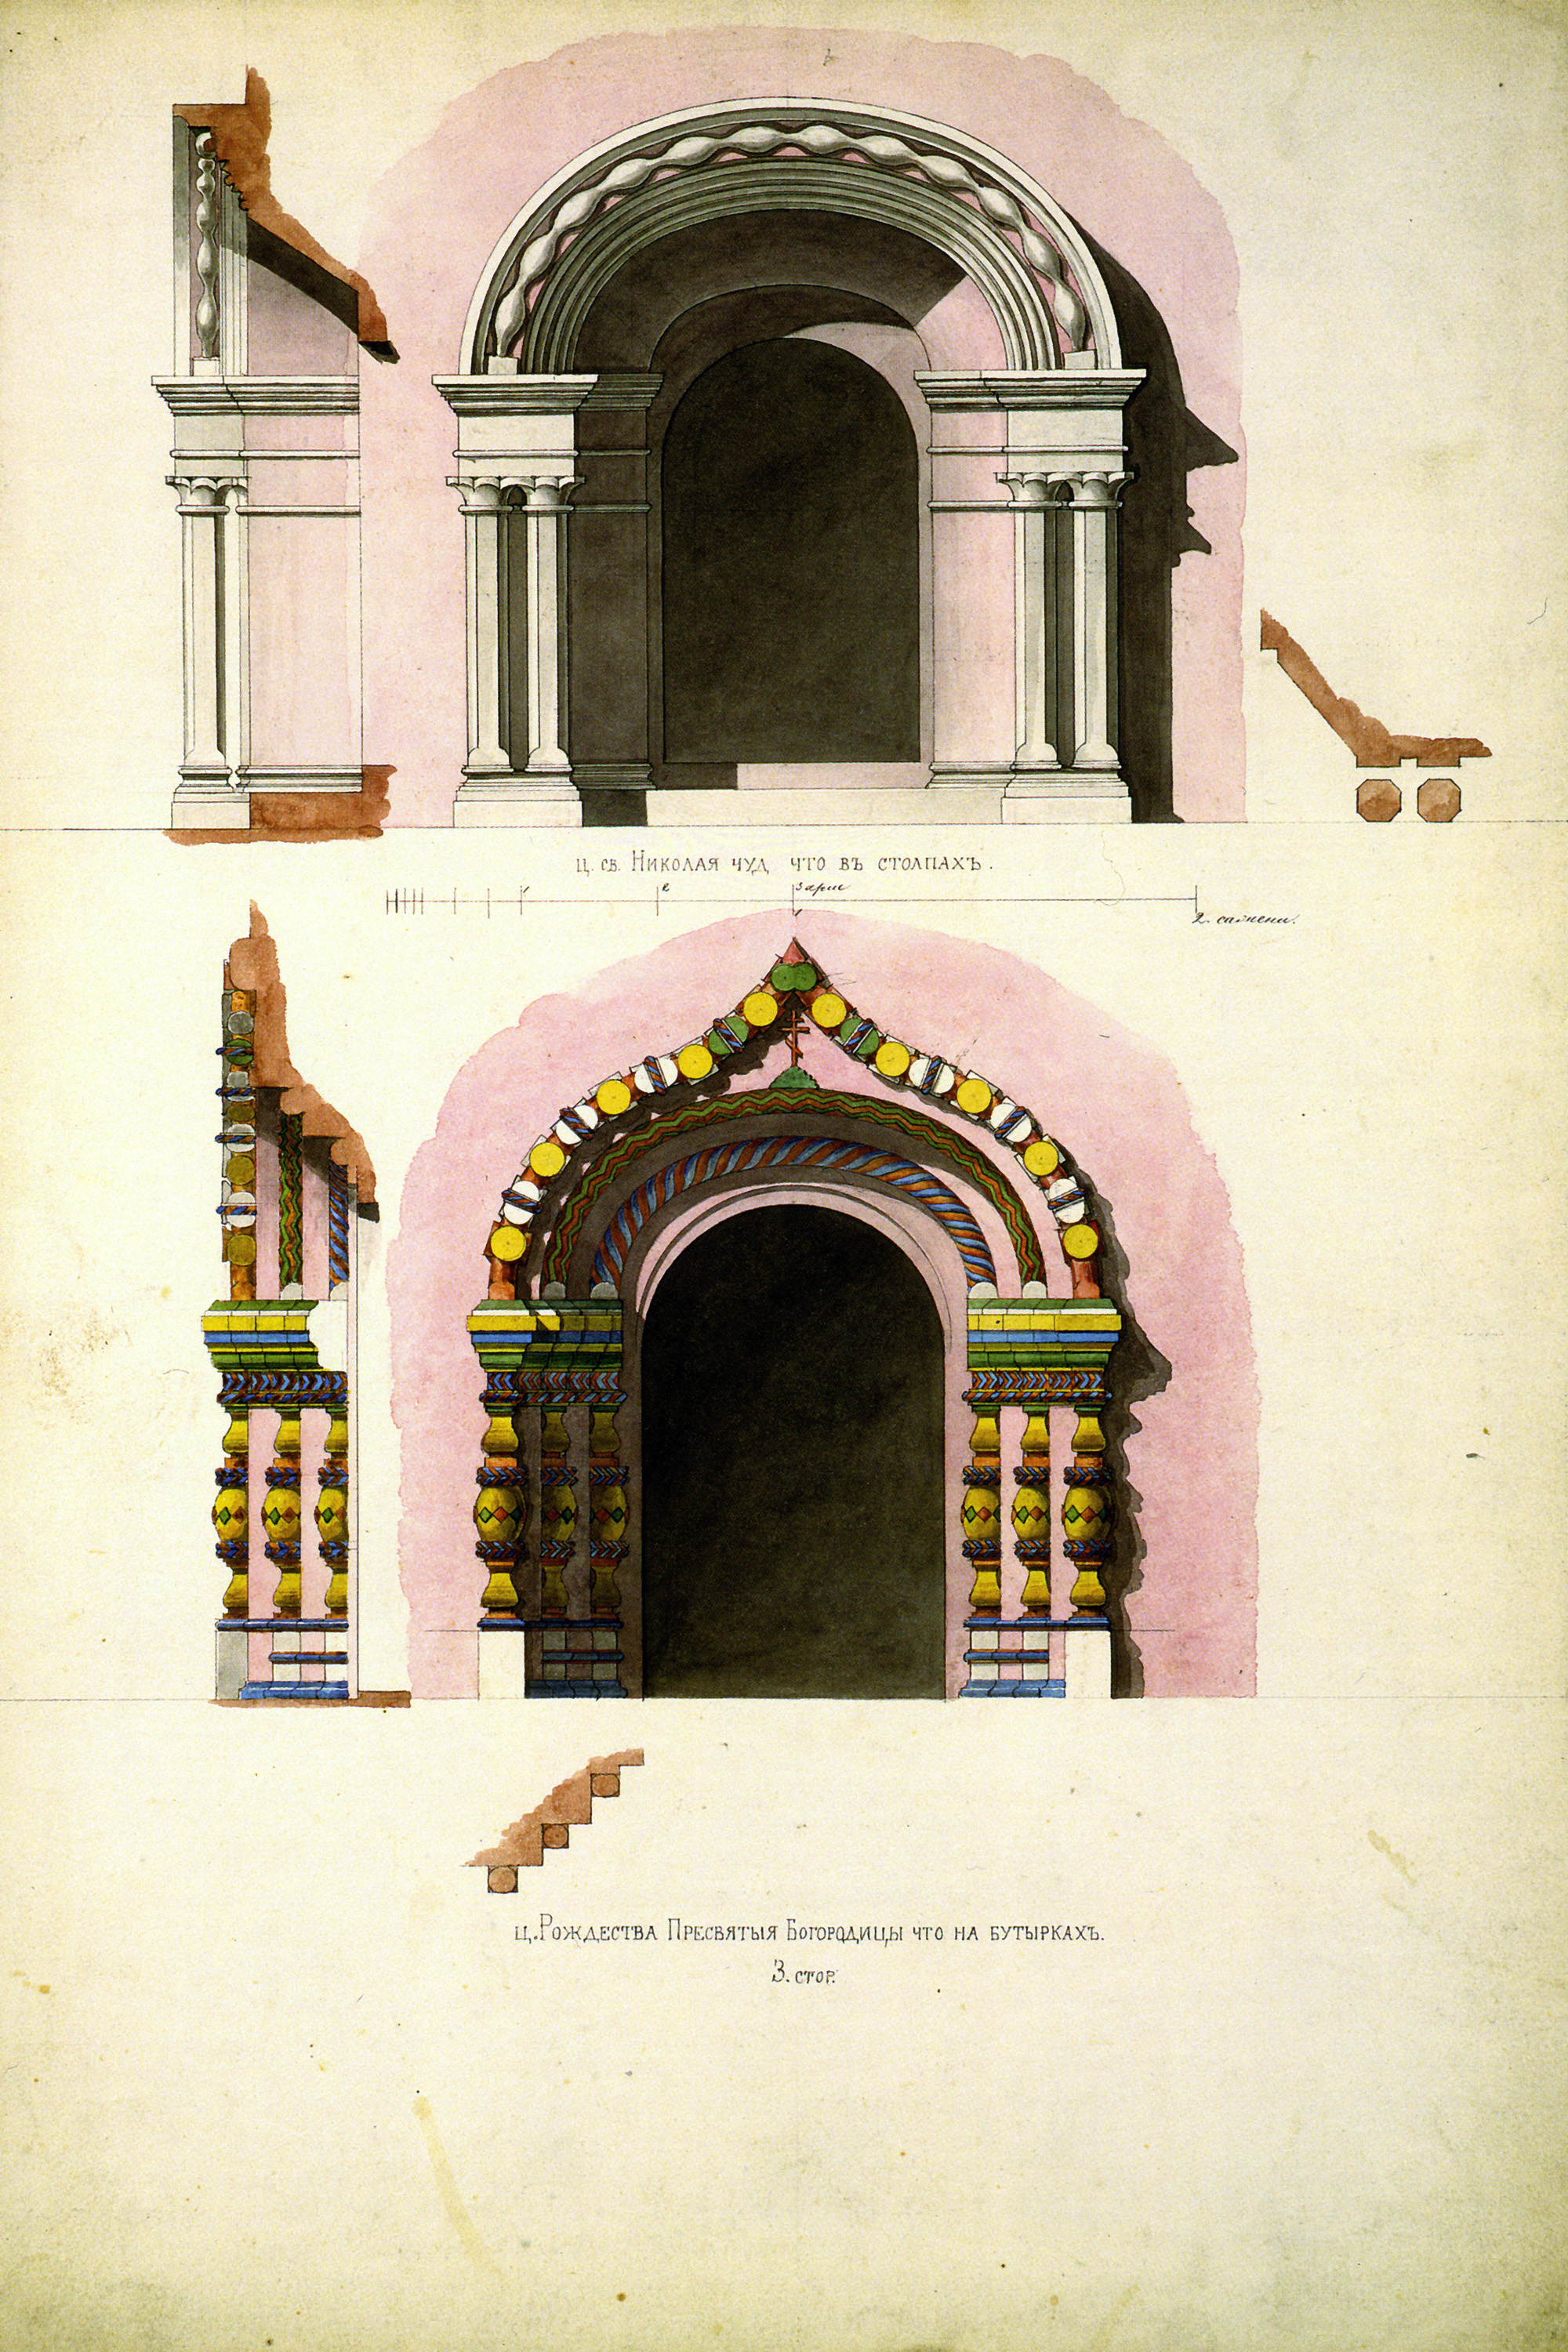 Muscovite_Window_and_Portals_17th_century_05